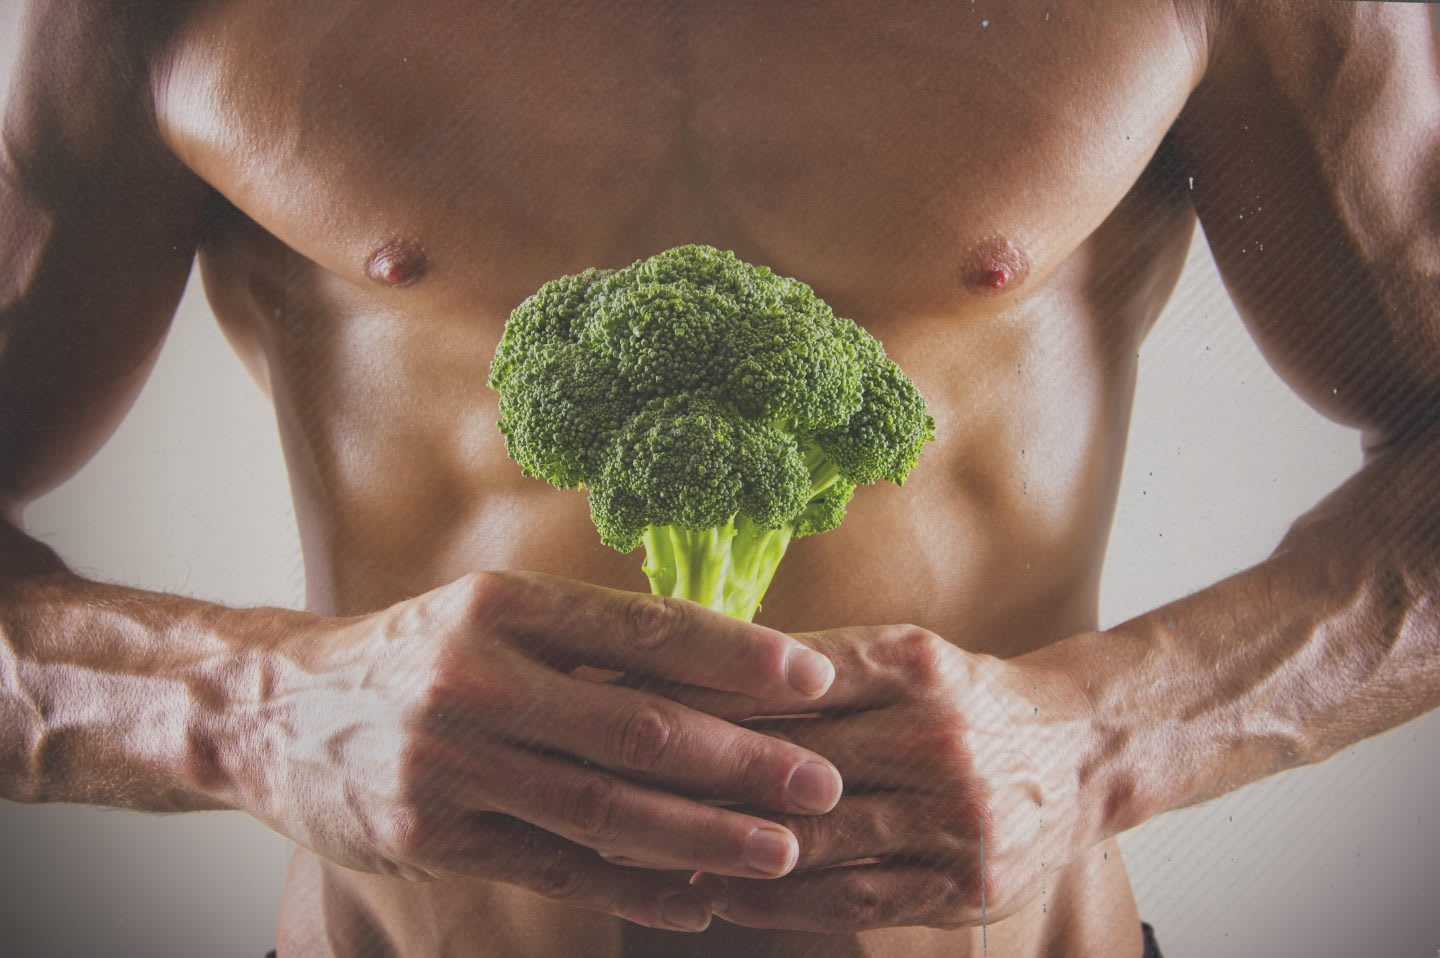 Muscular Caucasian athlete holding broccoli, nutrition, health, adidas, GamePlan A